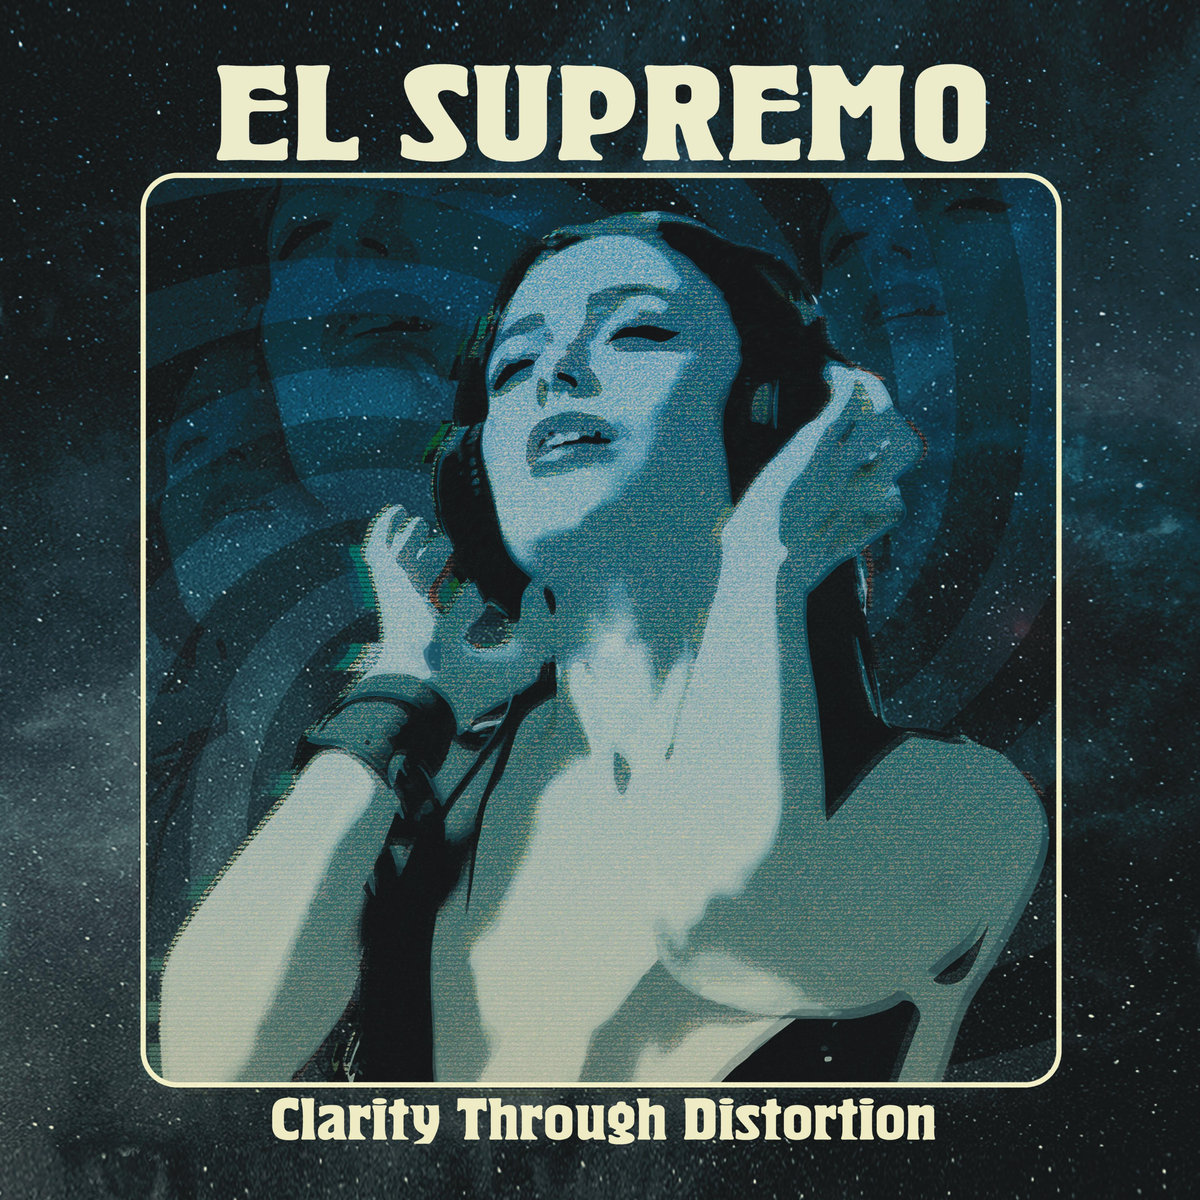 El Supremo Clarity Through Distortion